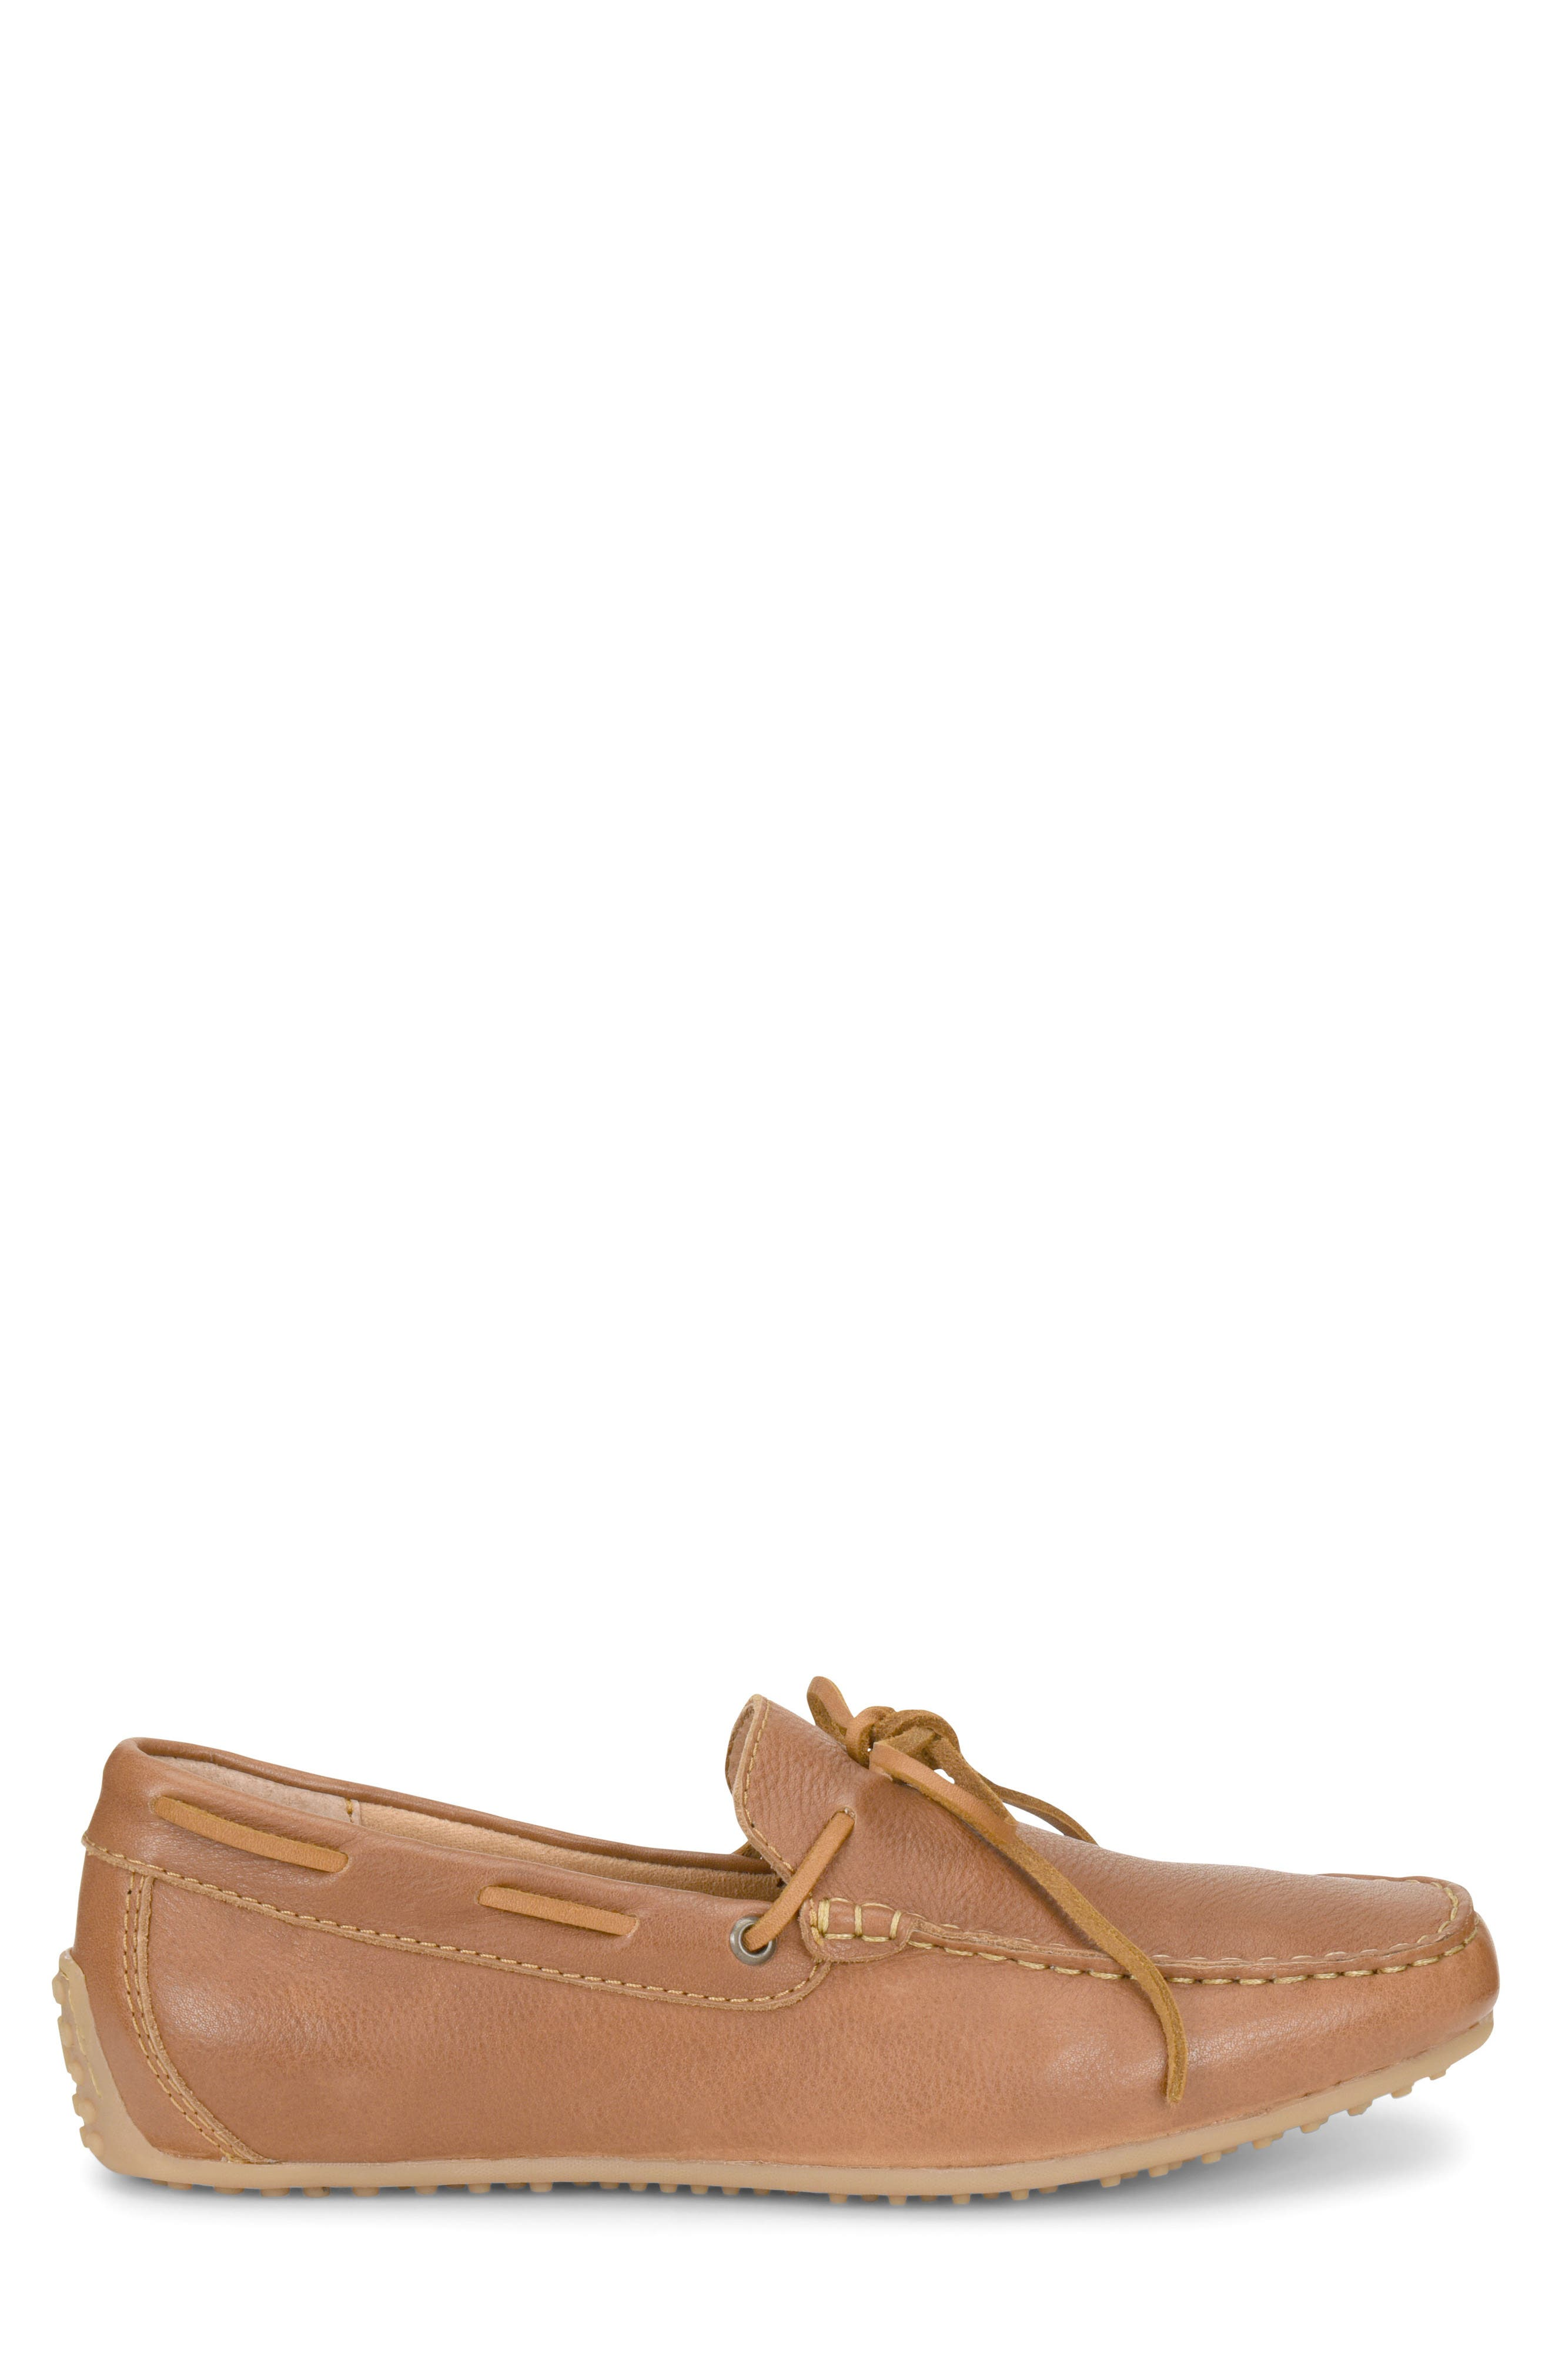 Virgo Driving Shoe,                             Alternate thumbnail 3, color,                             BROWN LEATHER